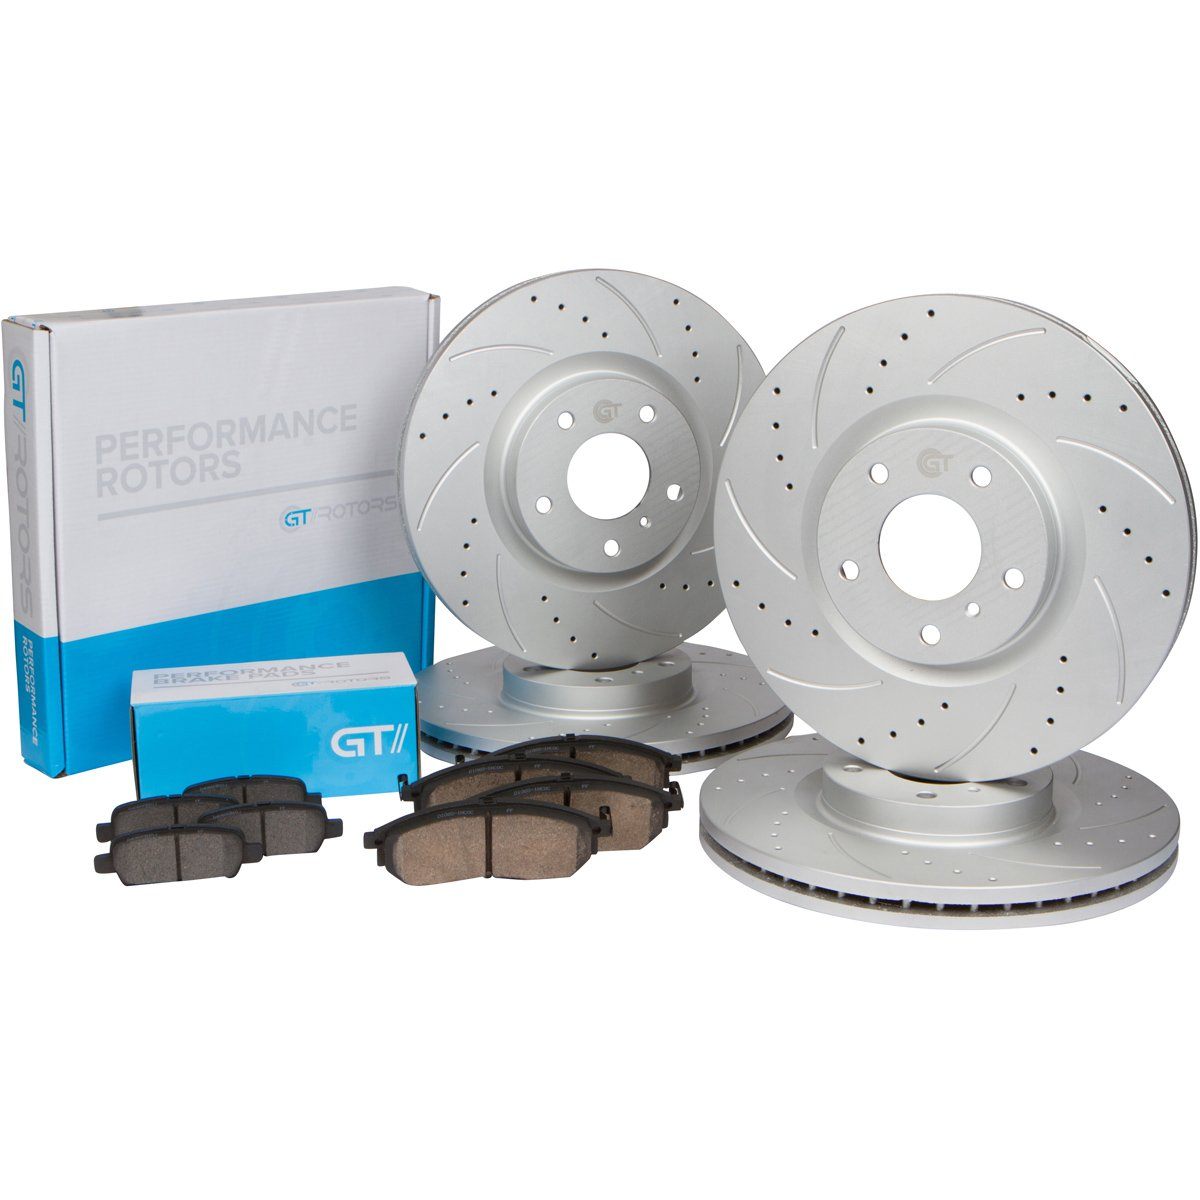 Amazon.com: [Front & Rear Kit] GT//Rotors Performance Brake Disc Rotors &  Ceramic Pads for Acura TL 2004 2005 2006 2007 2008: Automotive